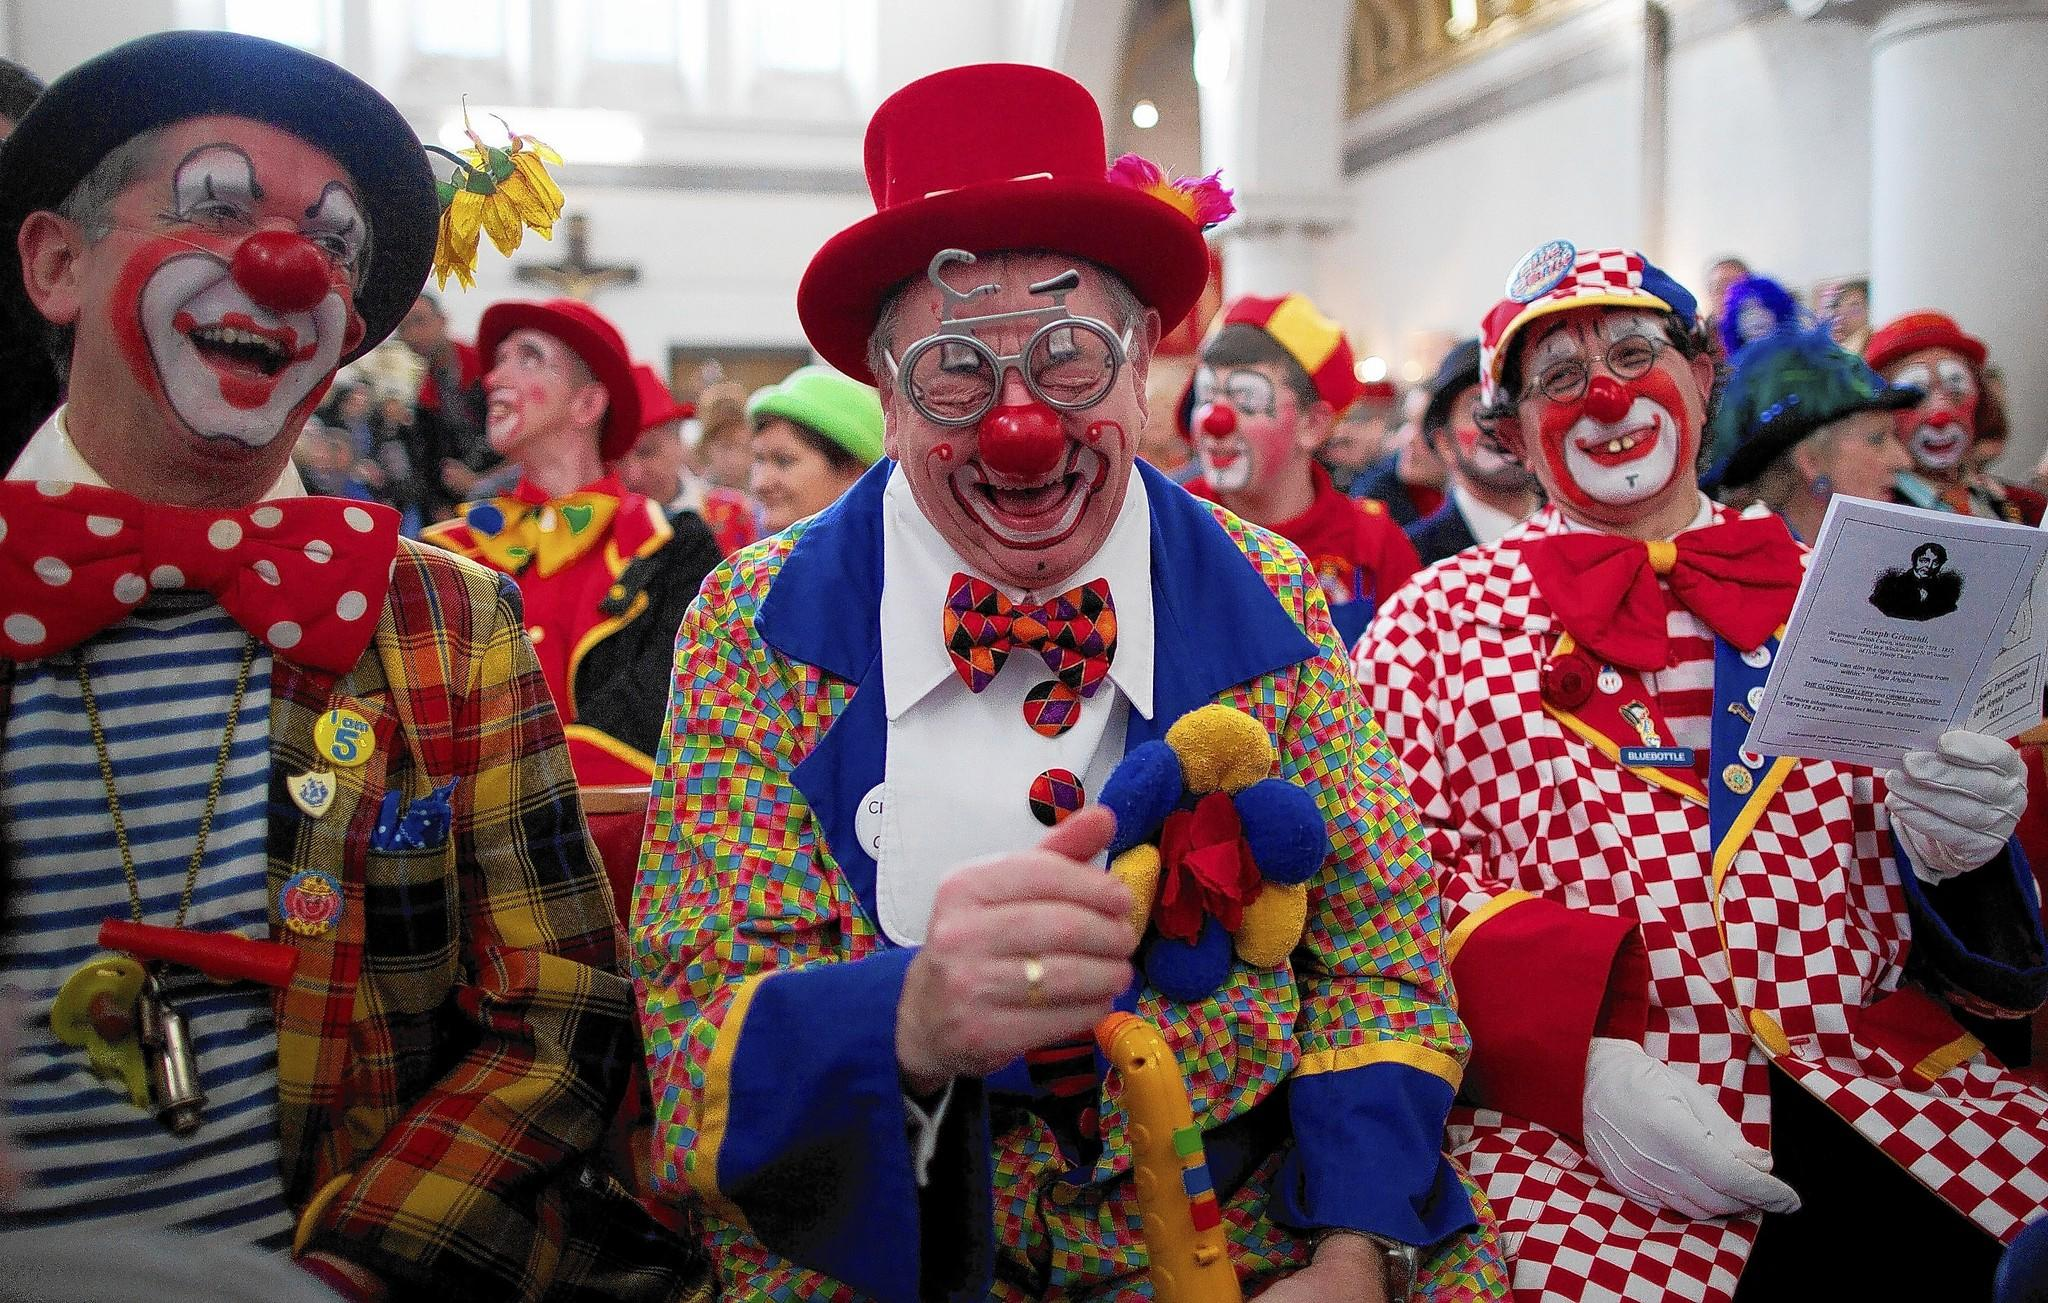 """The New York Daily News recently revealed that membership in """"the country's largest trade group for clowns"""" has plummeted as elder clown practitioners struggle to find new recruits."""